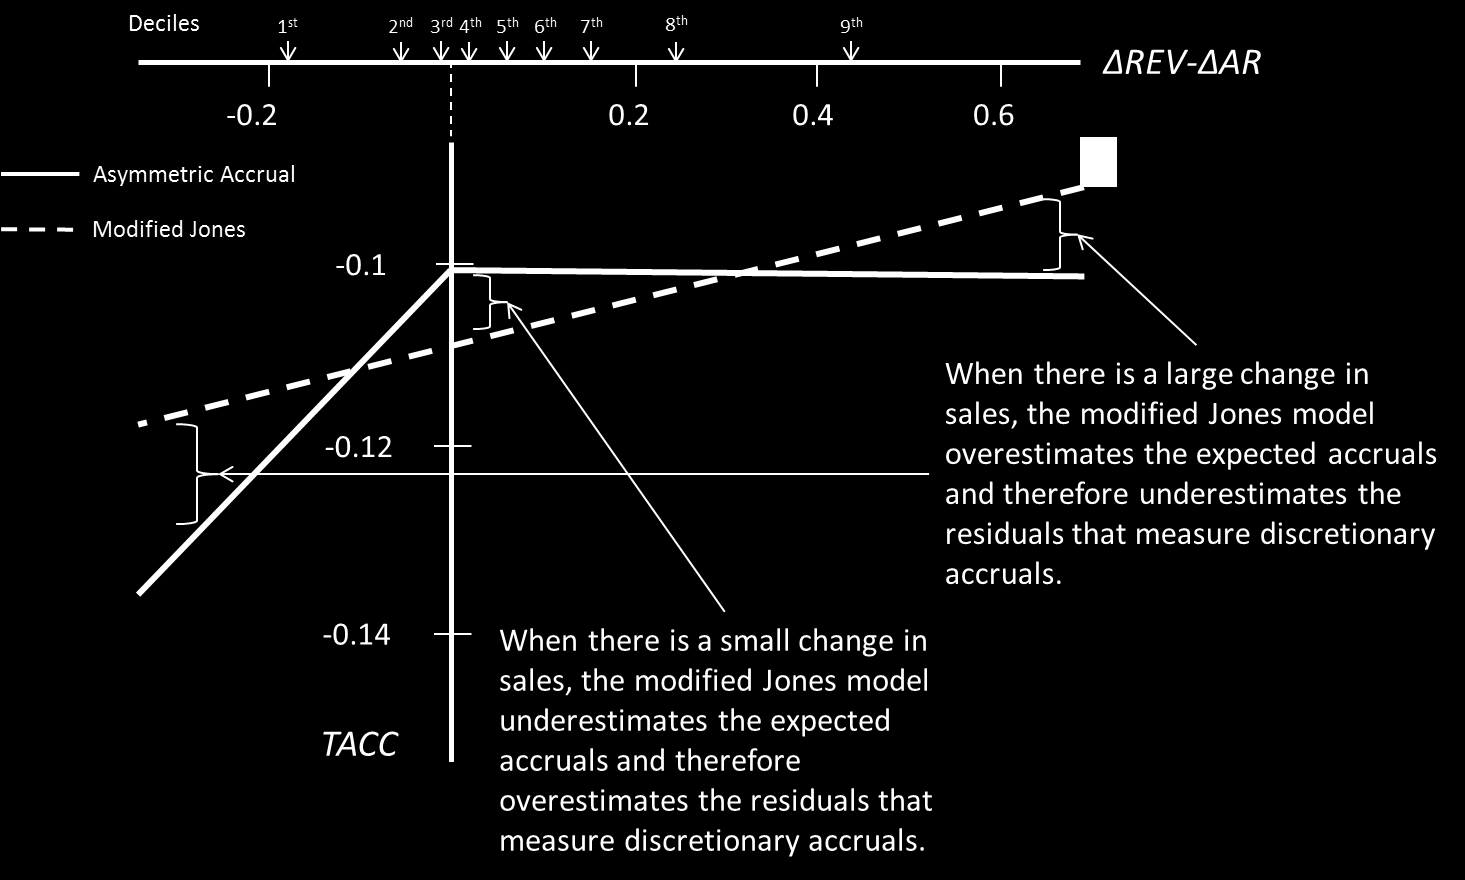 FIGURE 1 Relation Between Total Accruals and Revenue Change Note: The graphs in Figure 1 show the following functions: TACC t = 0.026 (ΔREV t ΔAR t ) 0.113 (Modified Jones model); TACC t = -0.